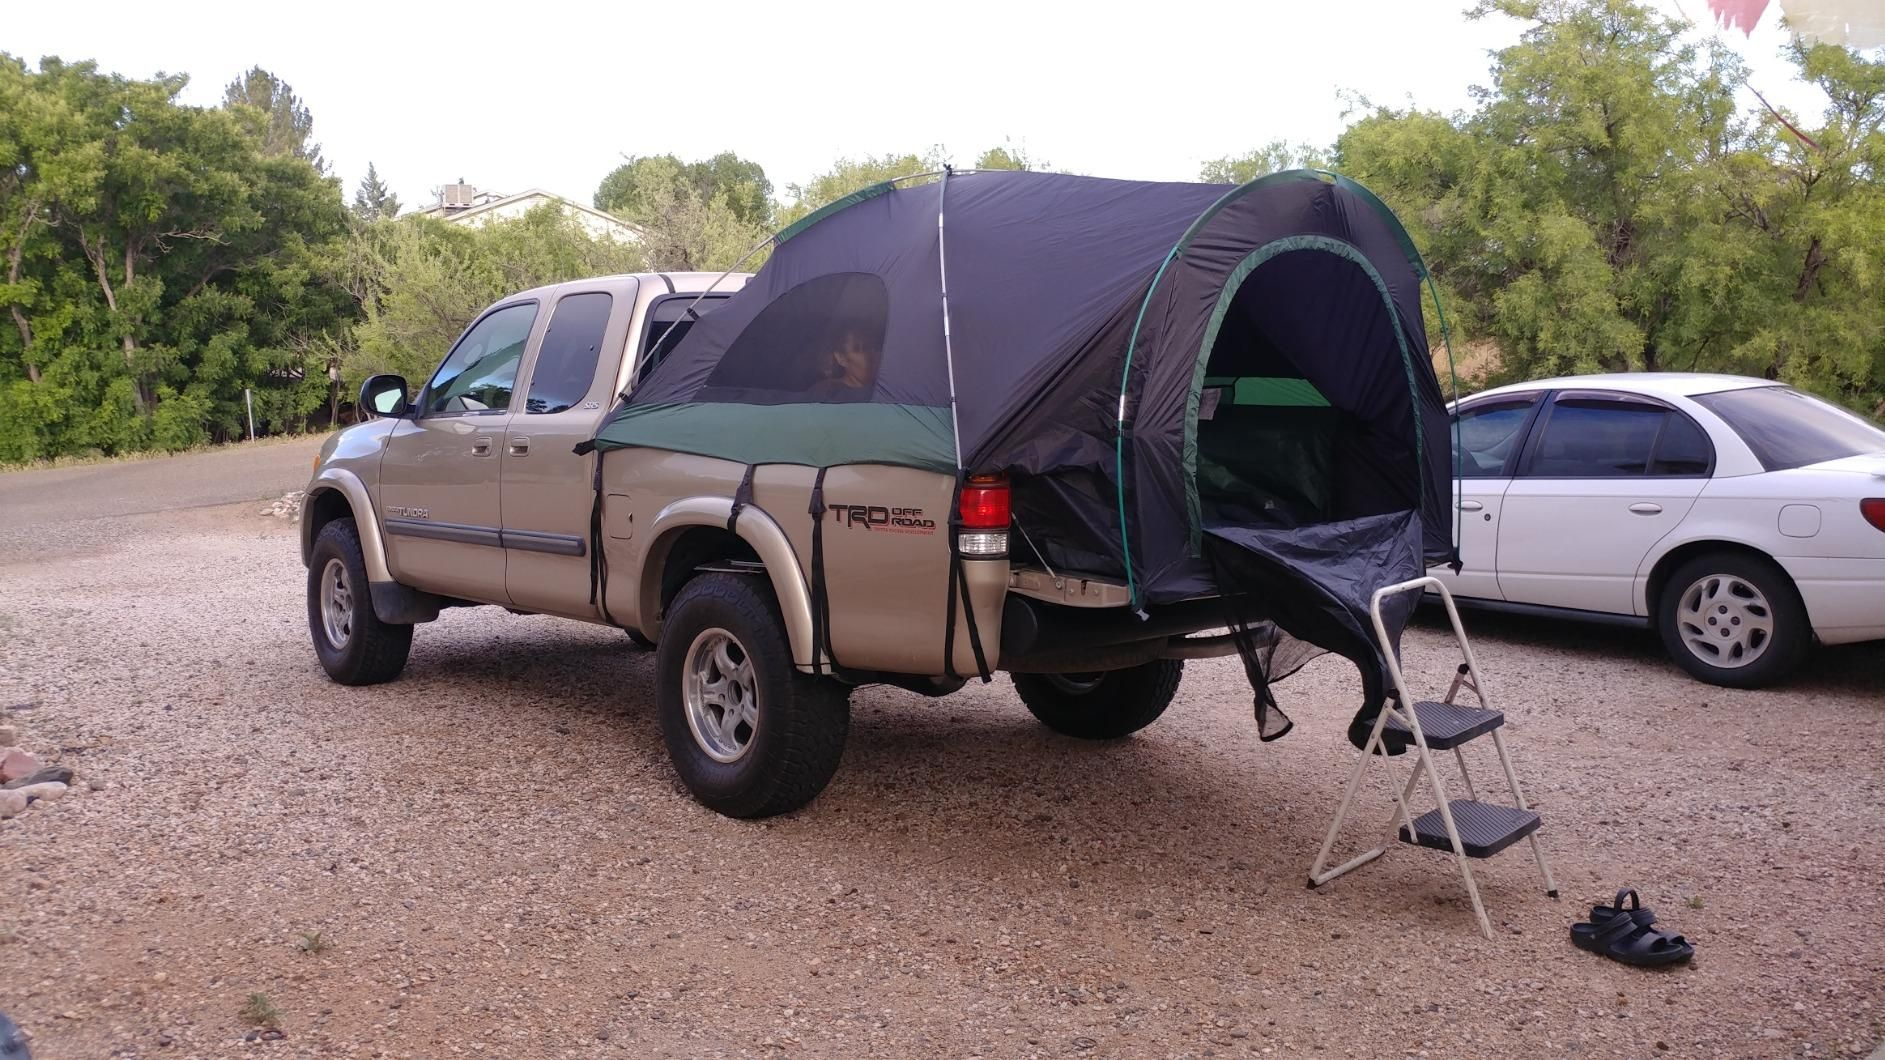 Tundra Truck Bed Camping In 2020 Truck Bed Camping Truck Tent Tundra Truck